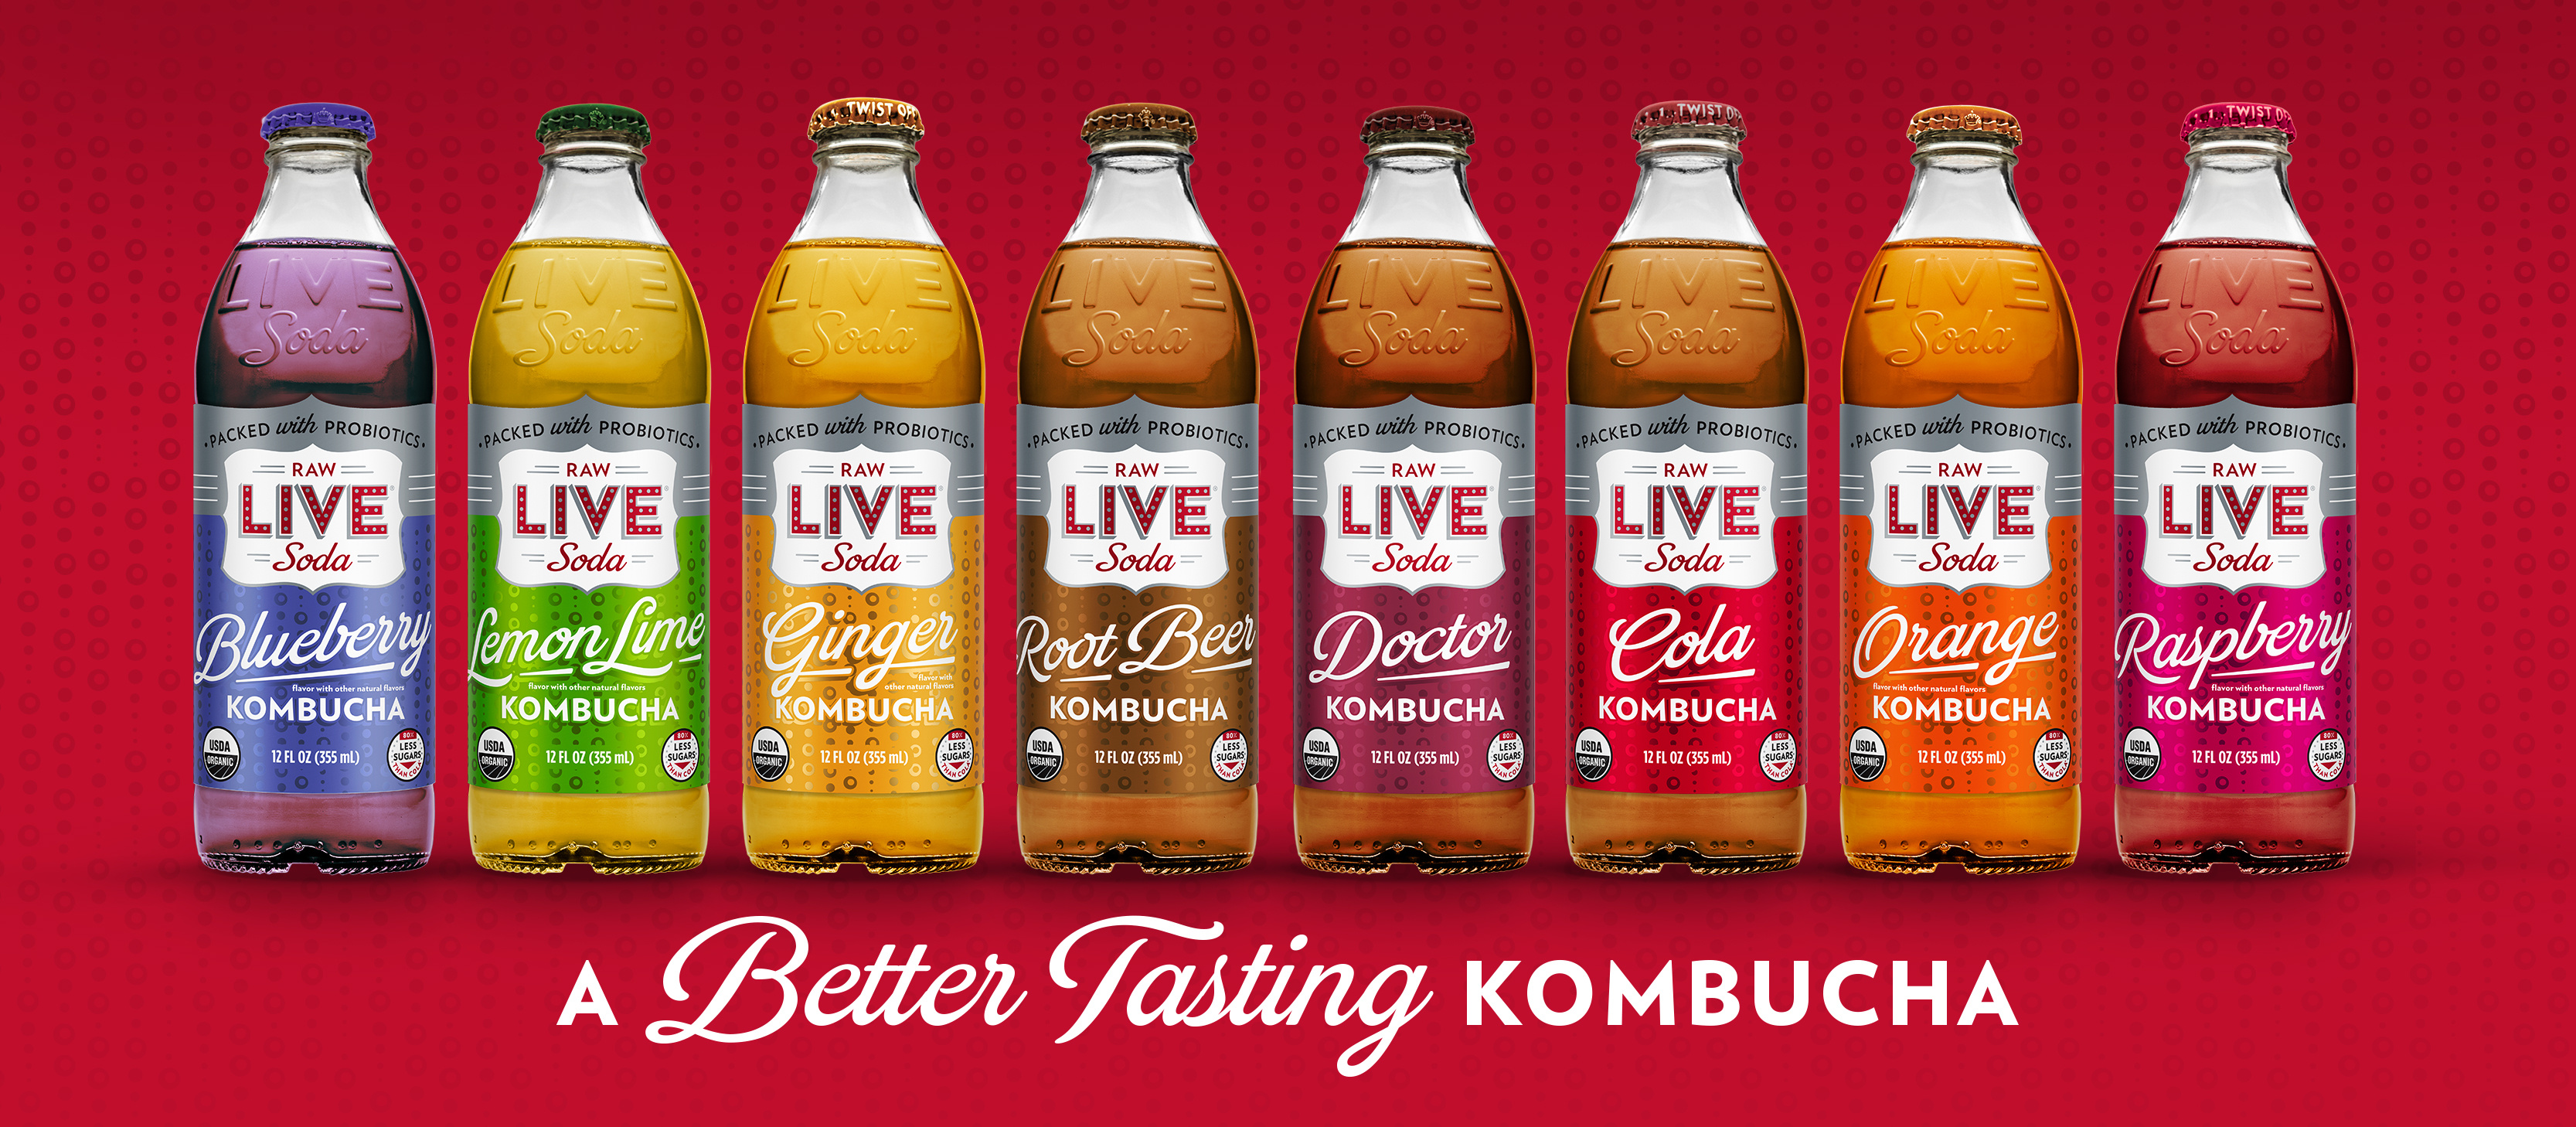 Live-Website-Kombucha-Hero-2018.jpg